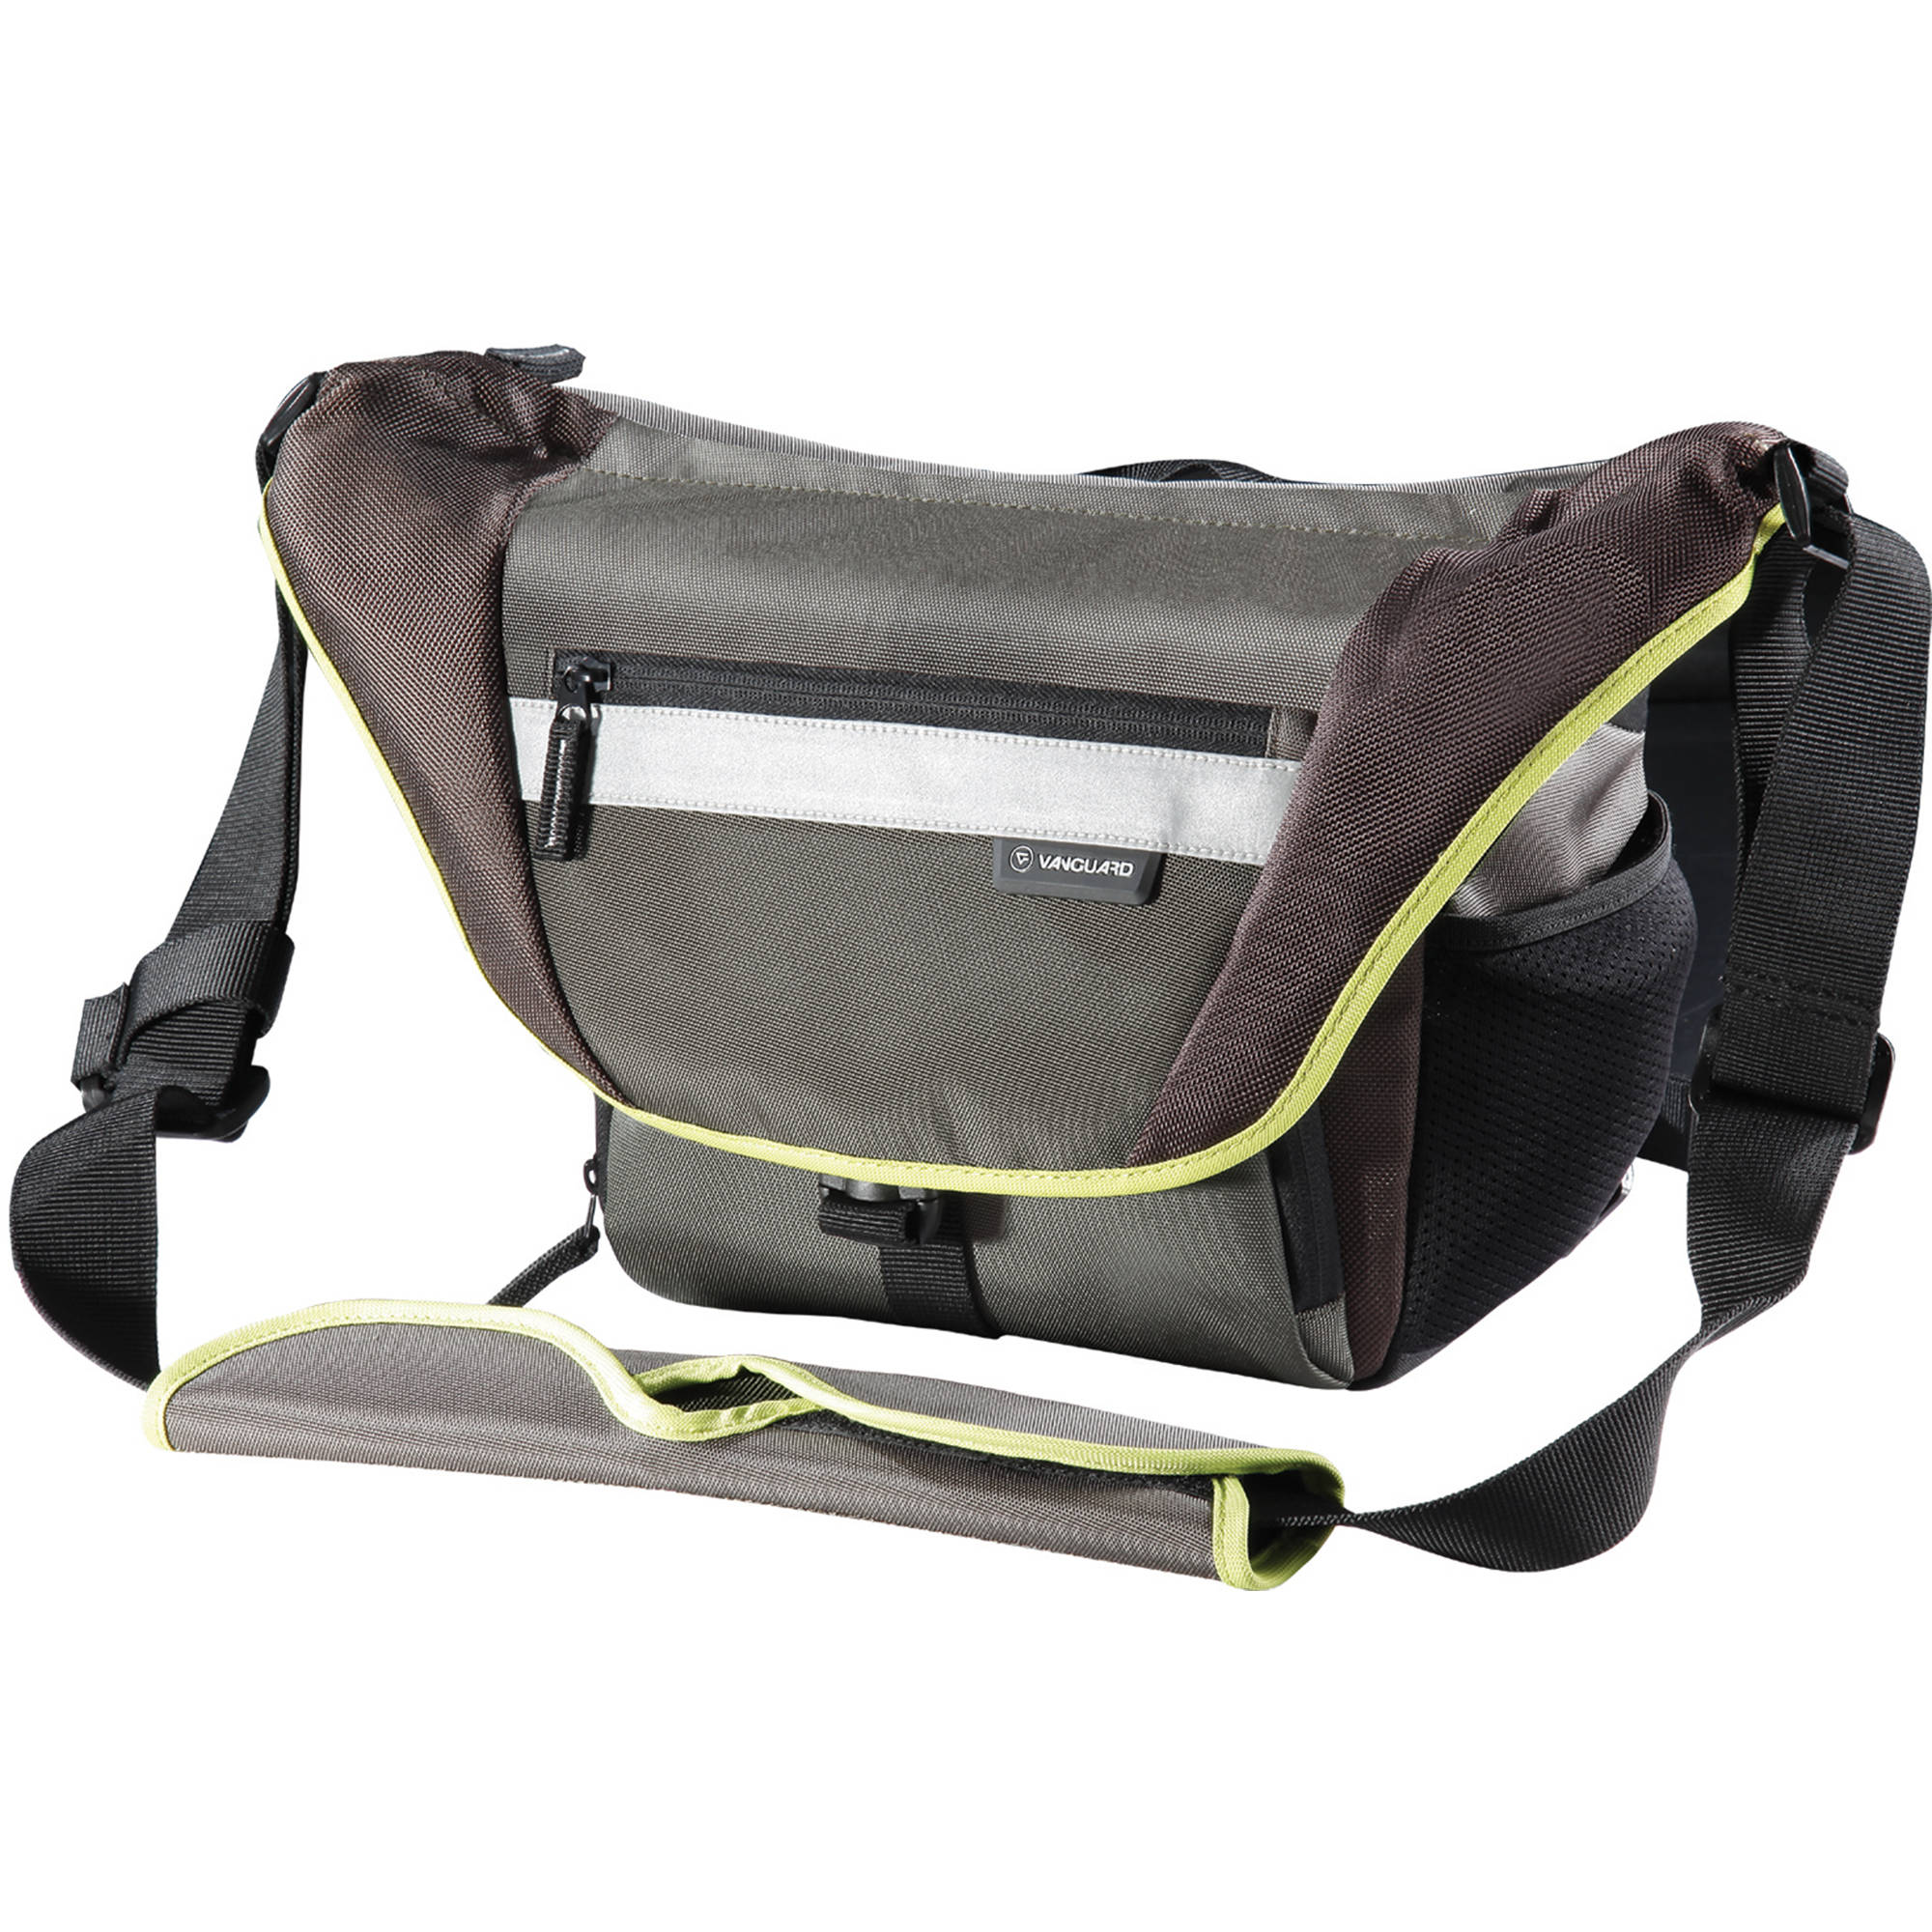 Vanguard Sydney 18 Messenger Bag (Olive)